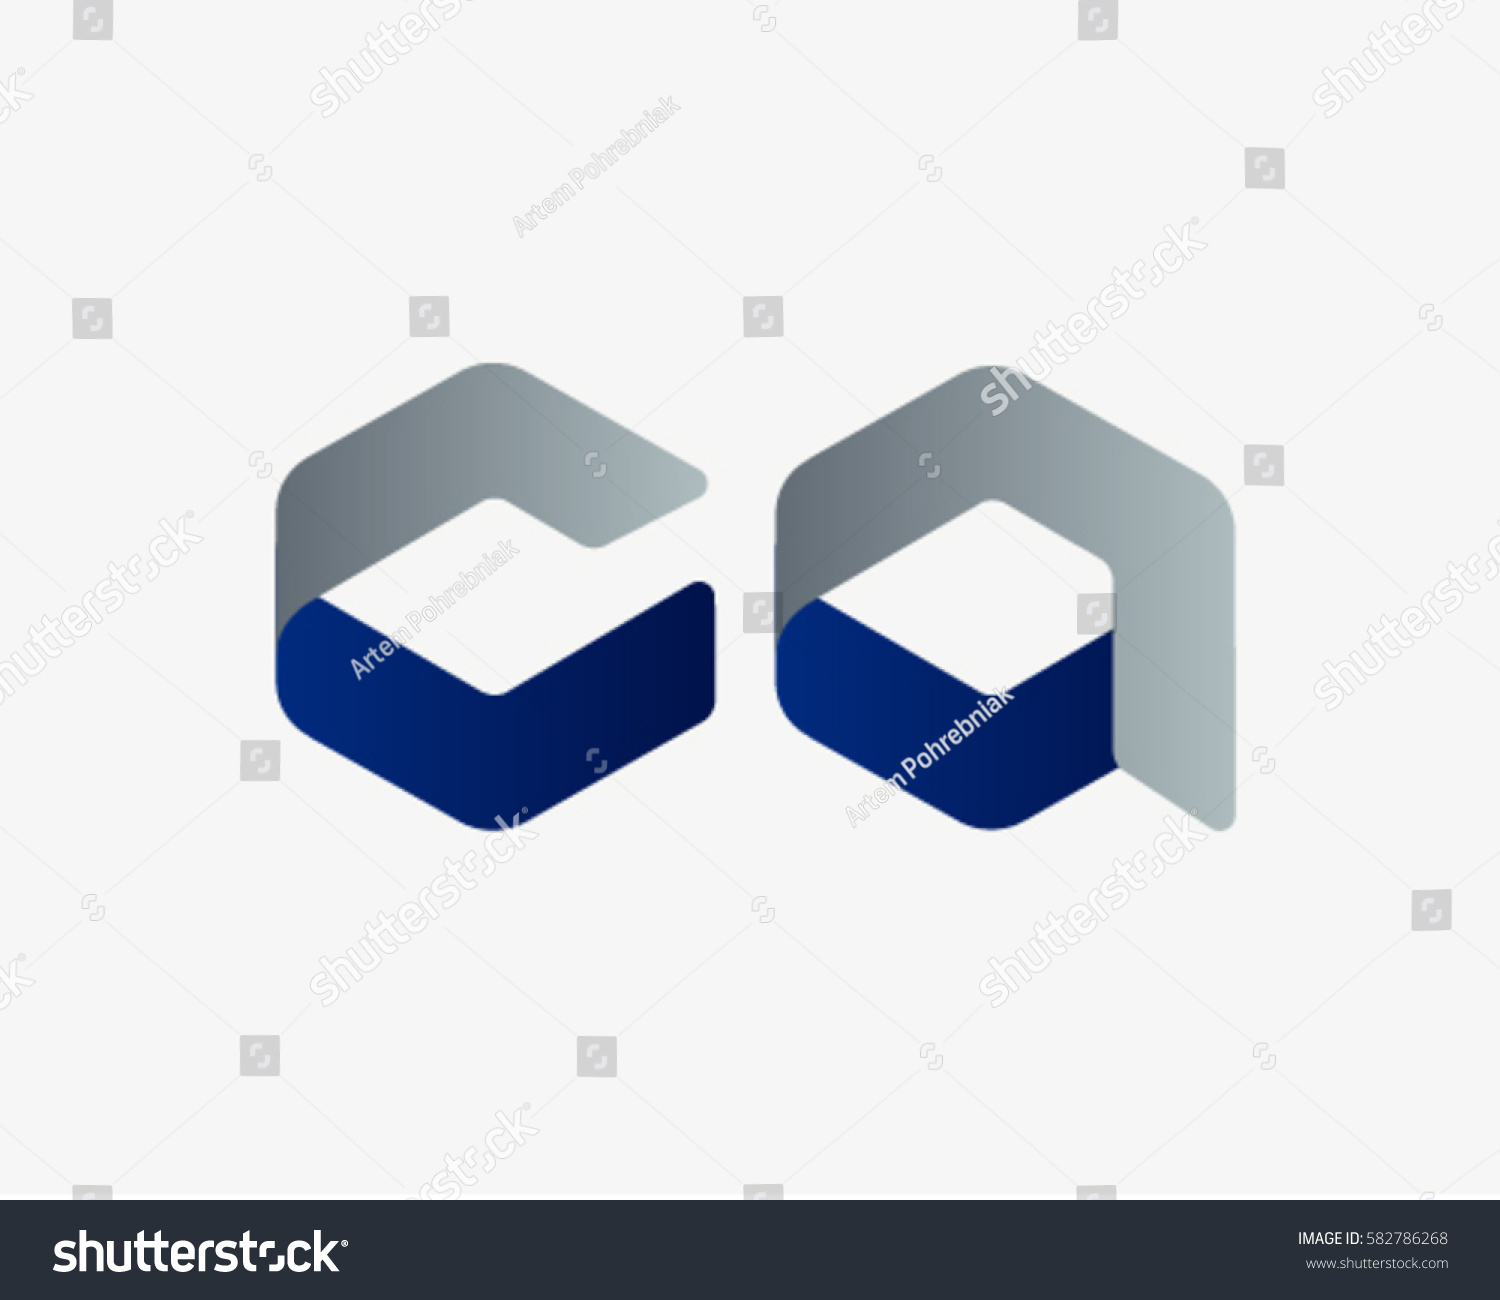 Ca logo letter design modern sign stock vector 582786268 ca logo letter design modern sign 3d symbol biocorpaavc